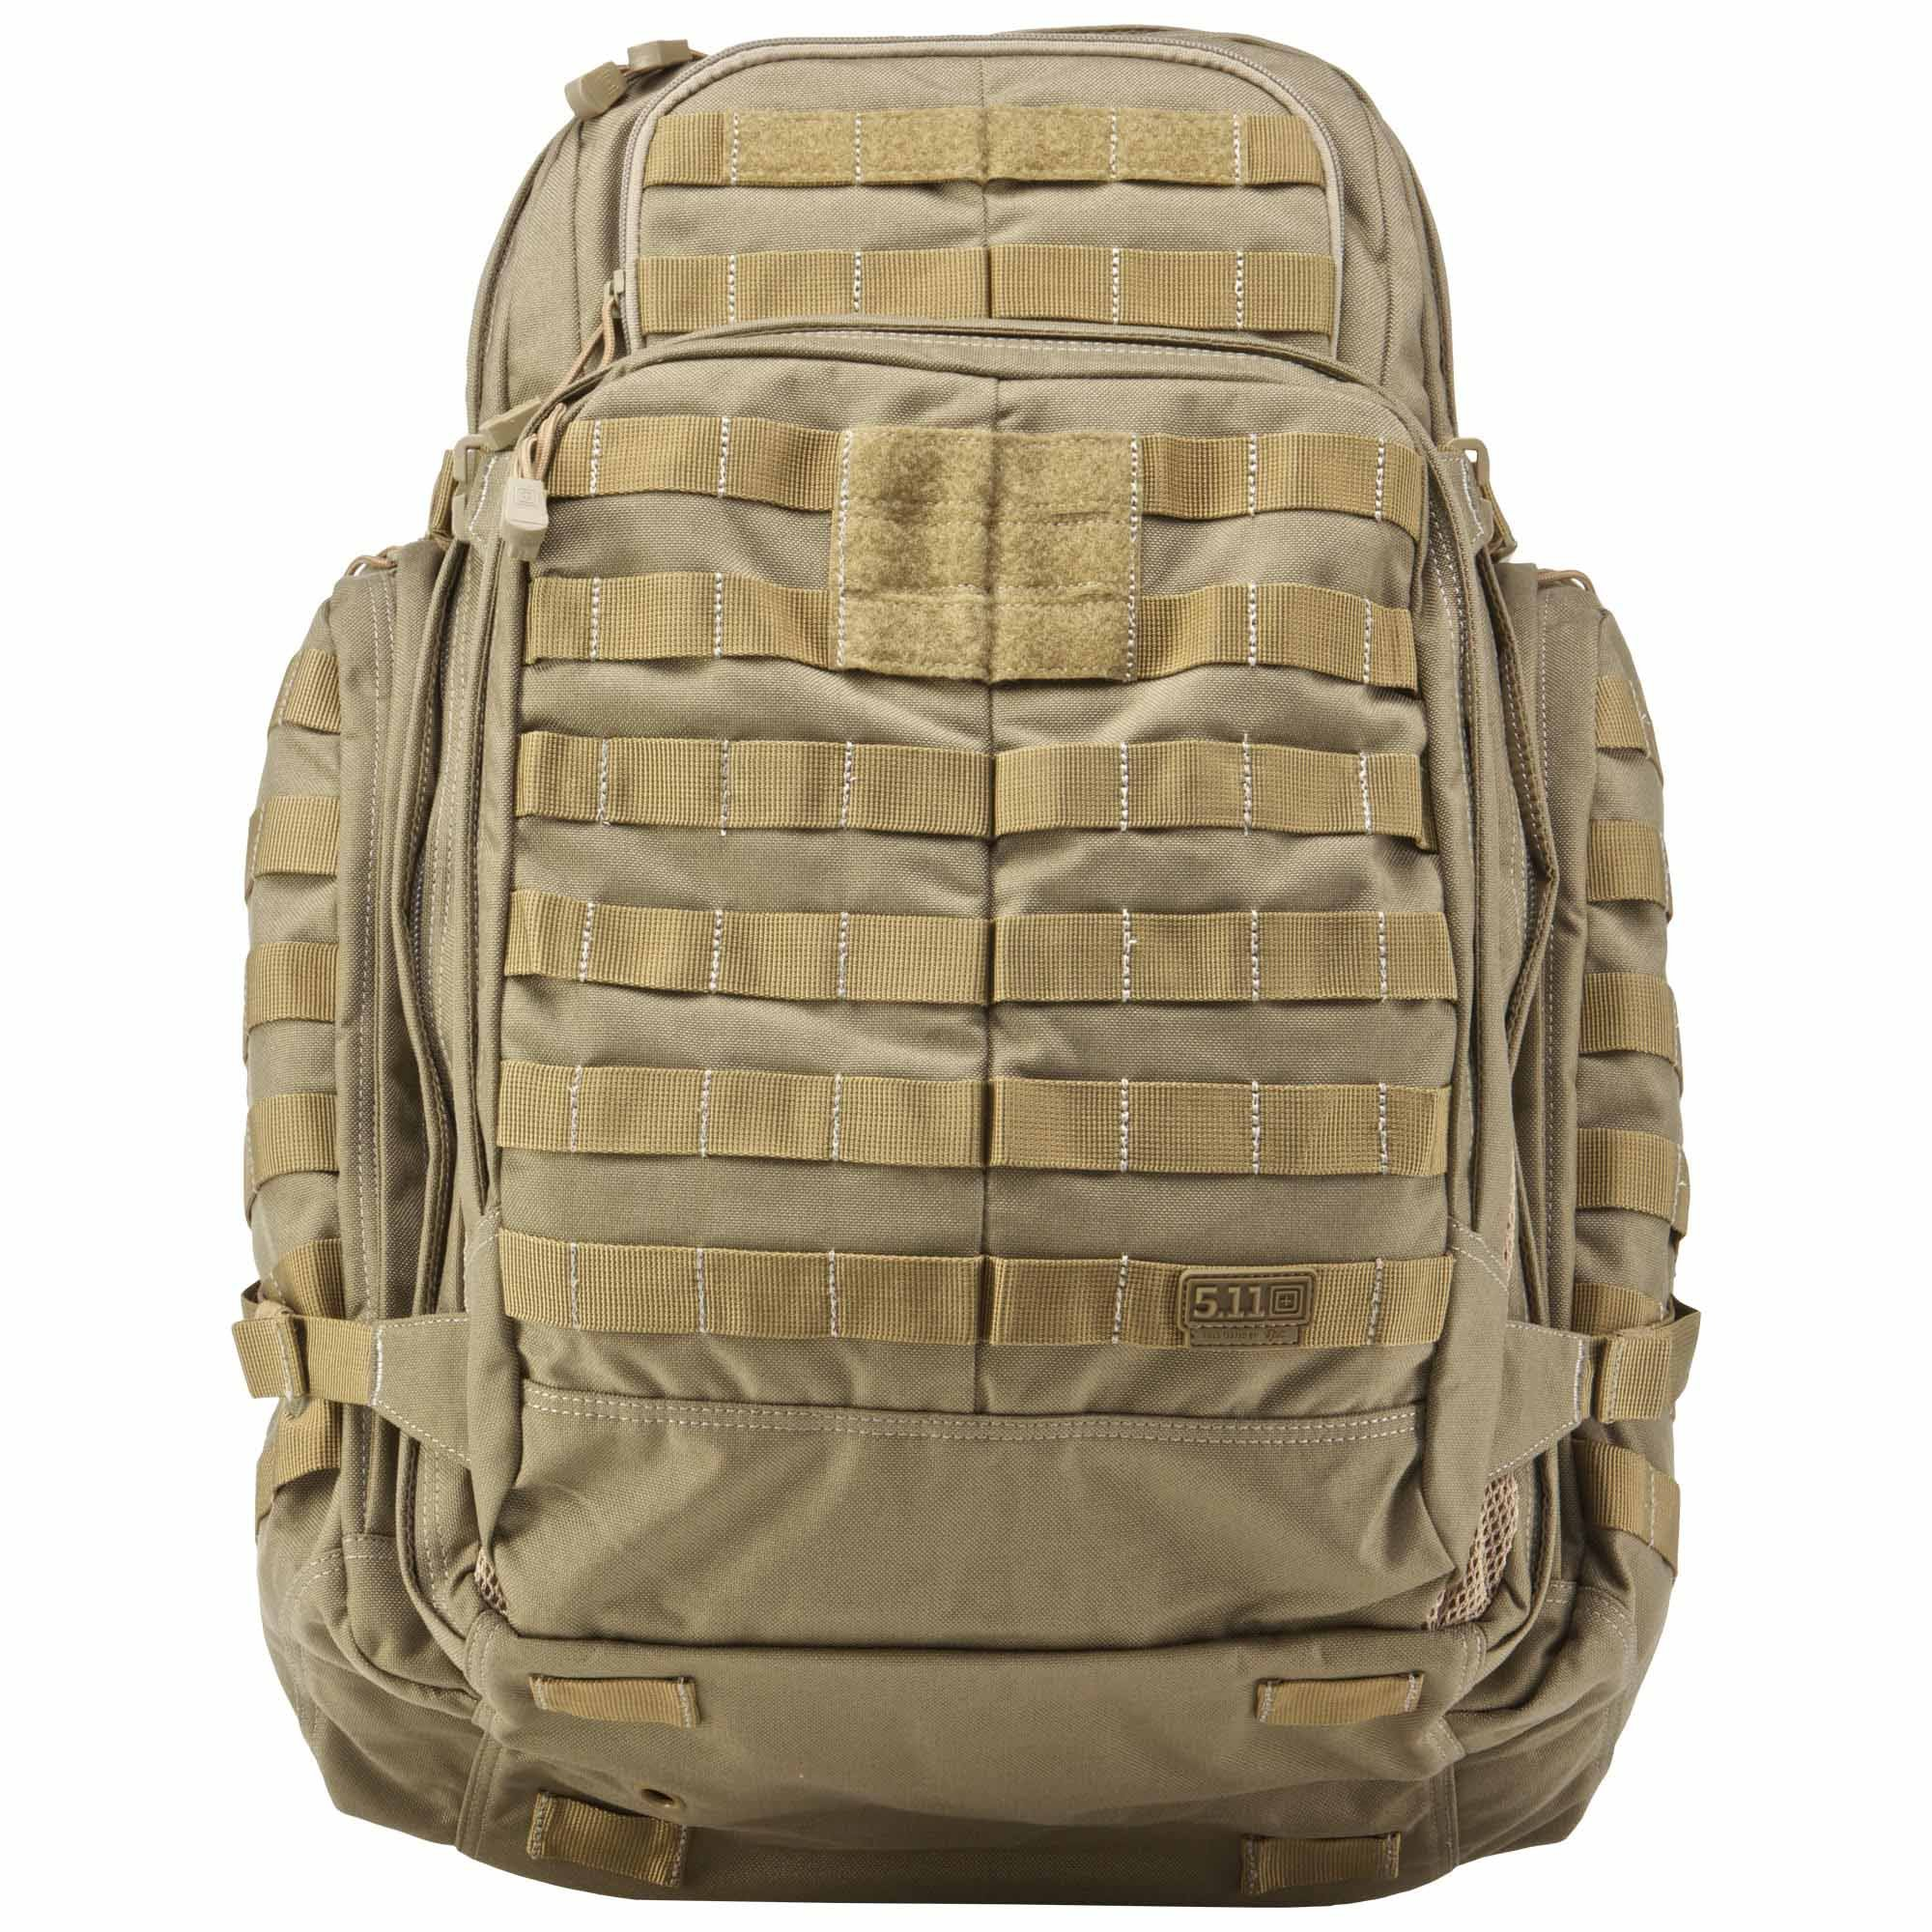 5.11 RUSH72 Tactical Backpack for Military cfe83fa8a738d